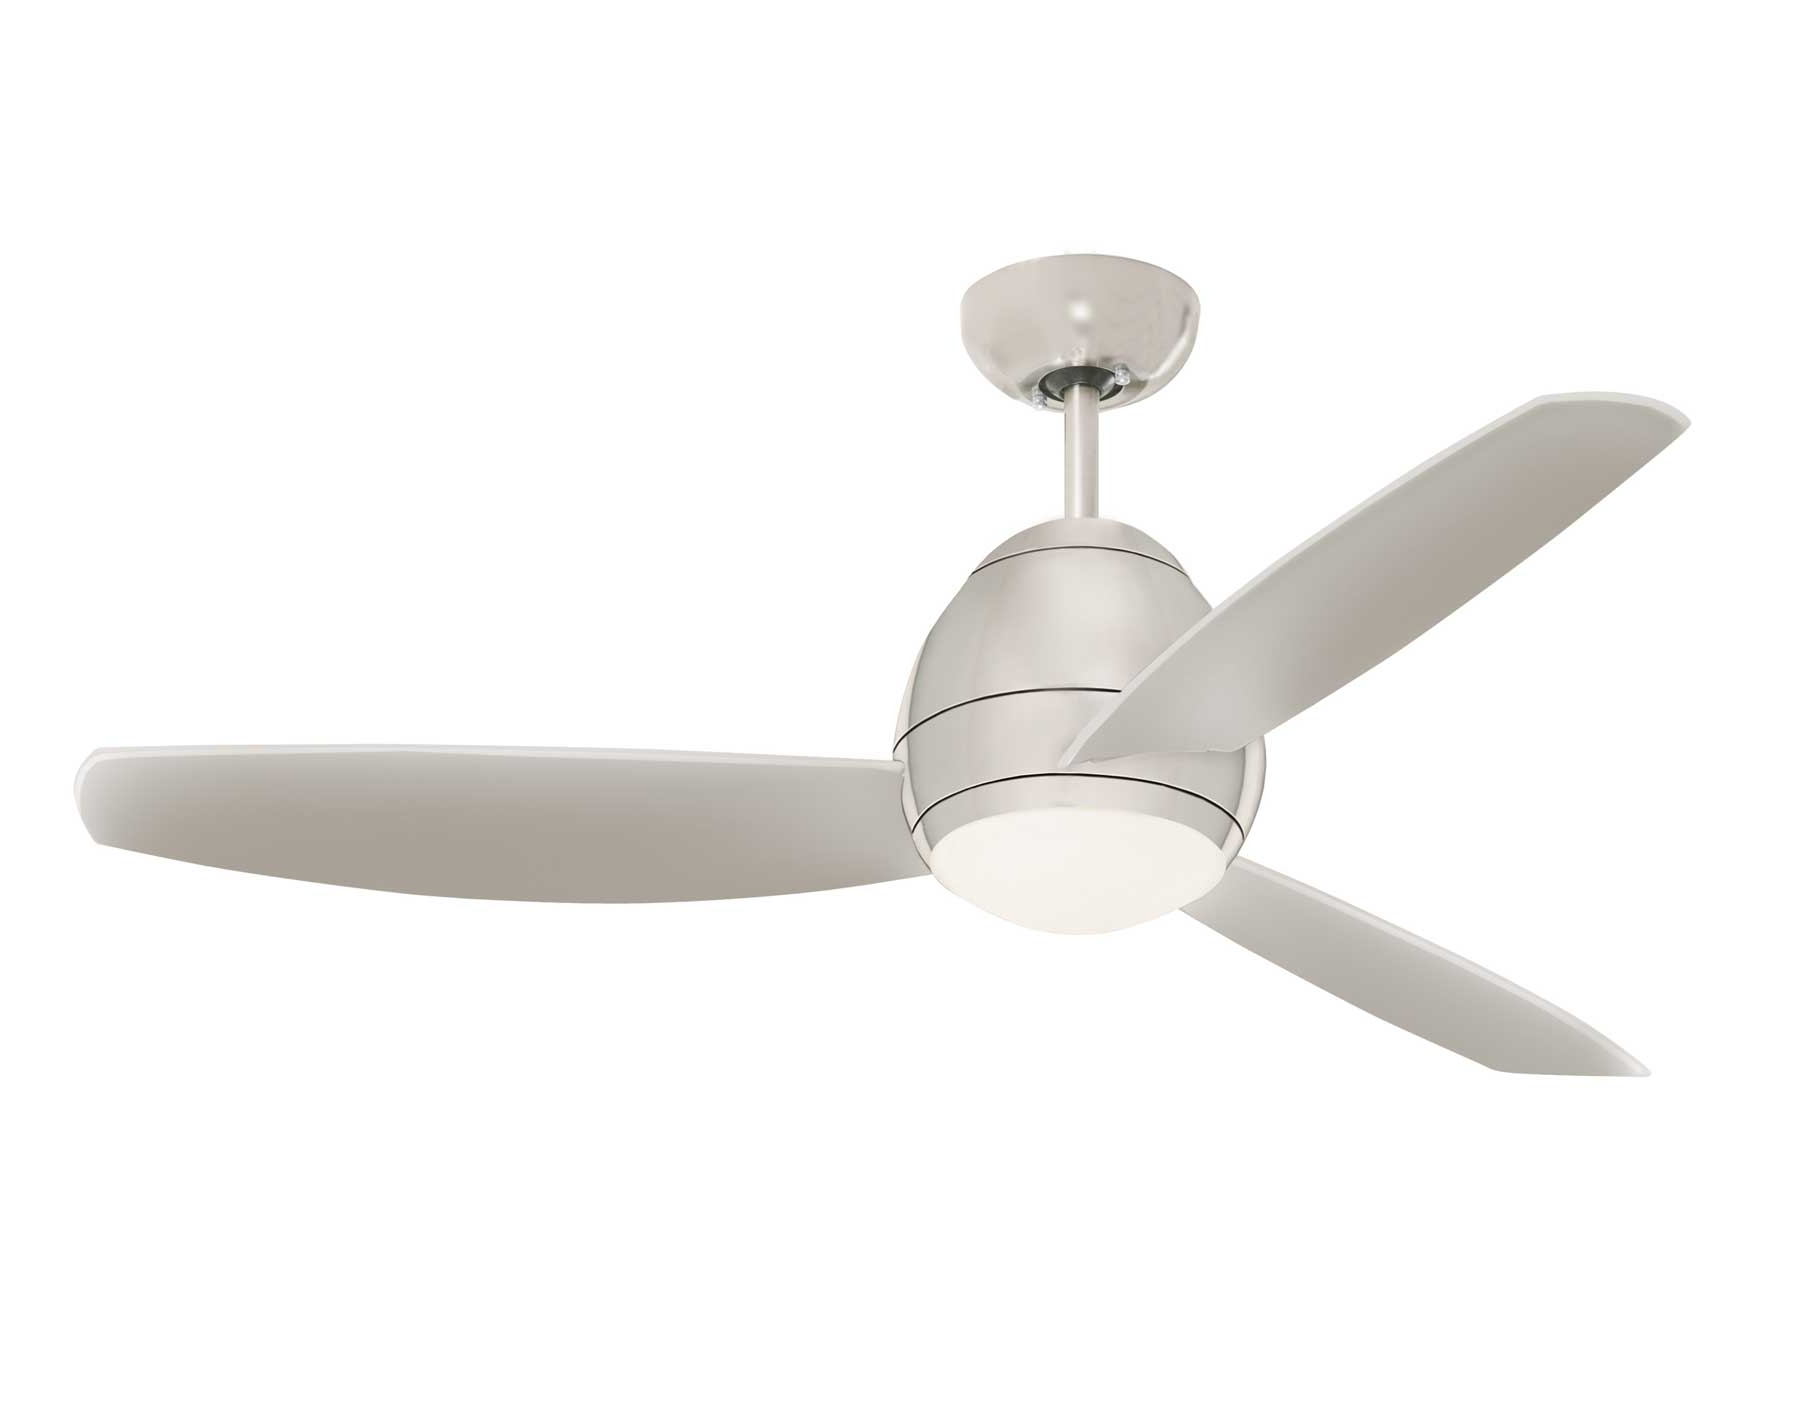 Well Known Stainless Steel Outdoor Ceiling Fans With Light With Brushed Steel Avruc Outdoor Ceiling Fan W/ Light, Outdoor Ceiling (View 19 of 20)